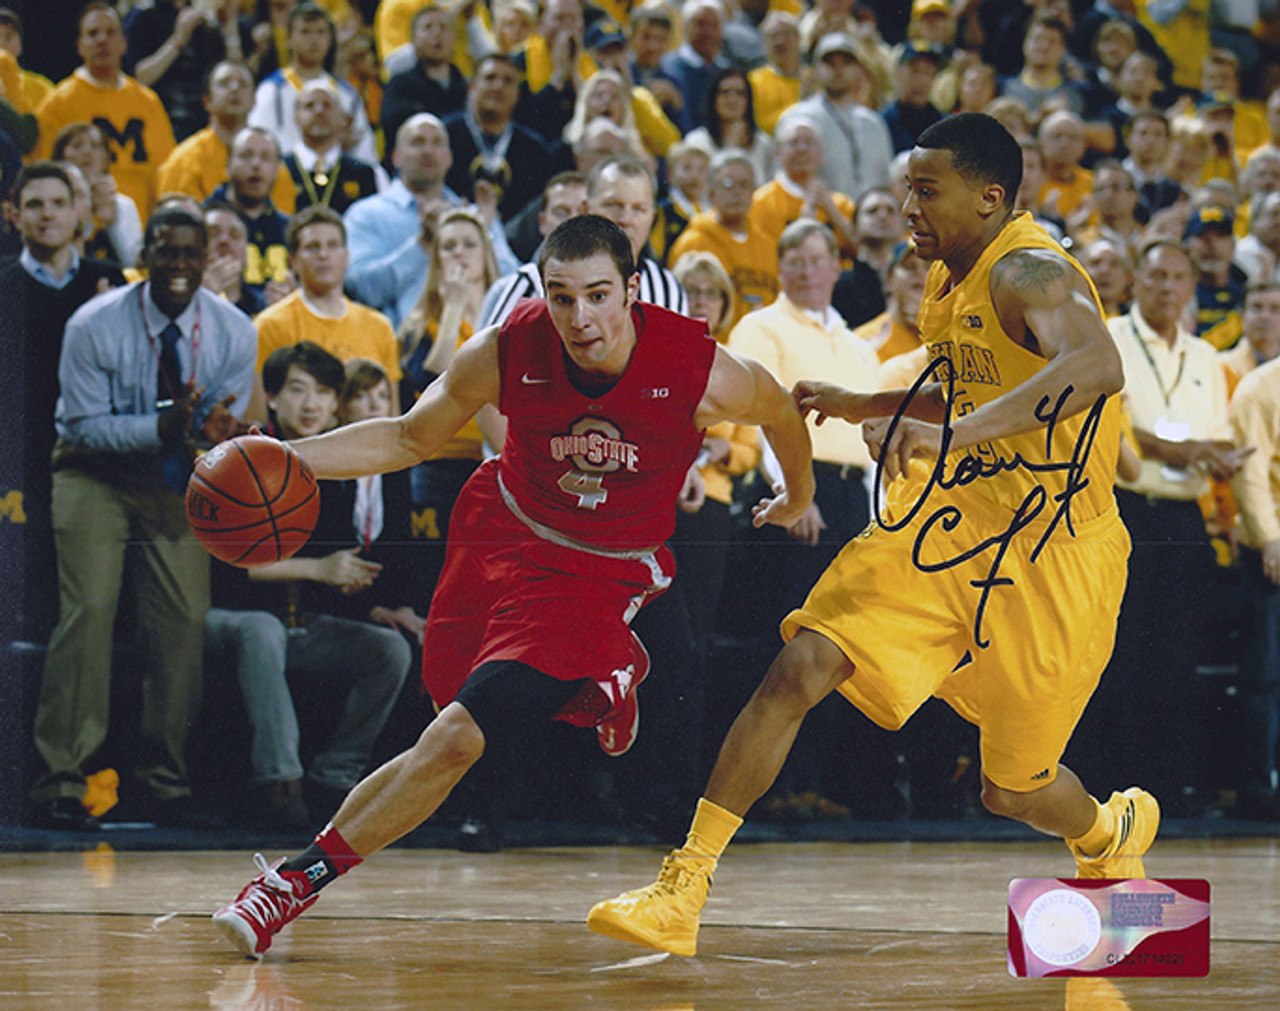 Aaron Craft OSU 8-3 8x10 Autographed Photo - Certified Authentic